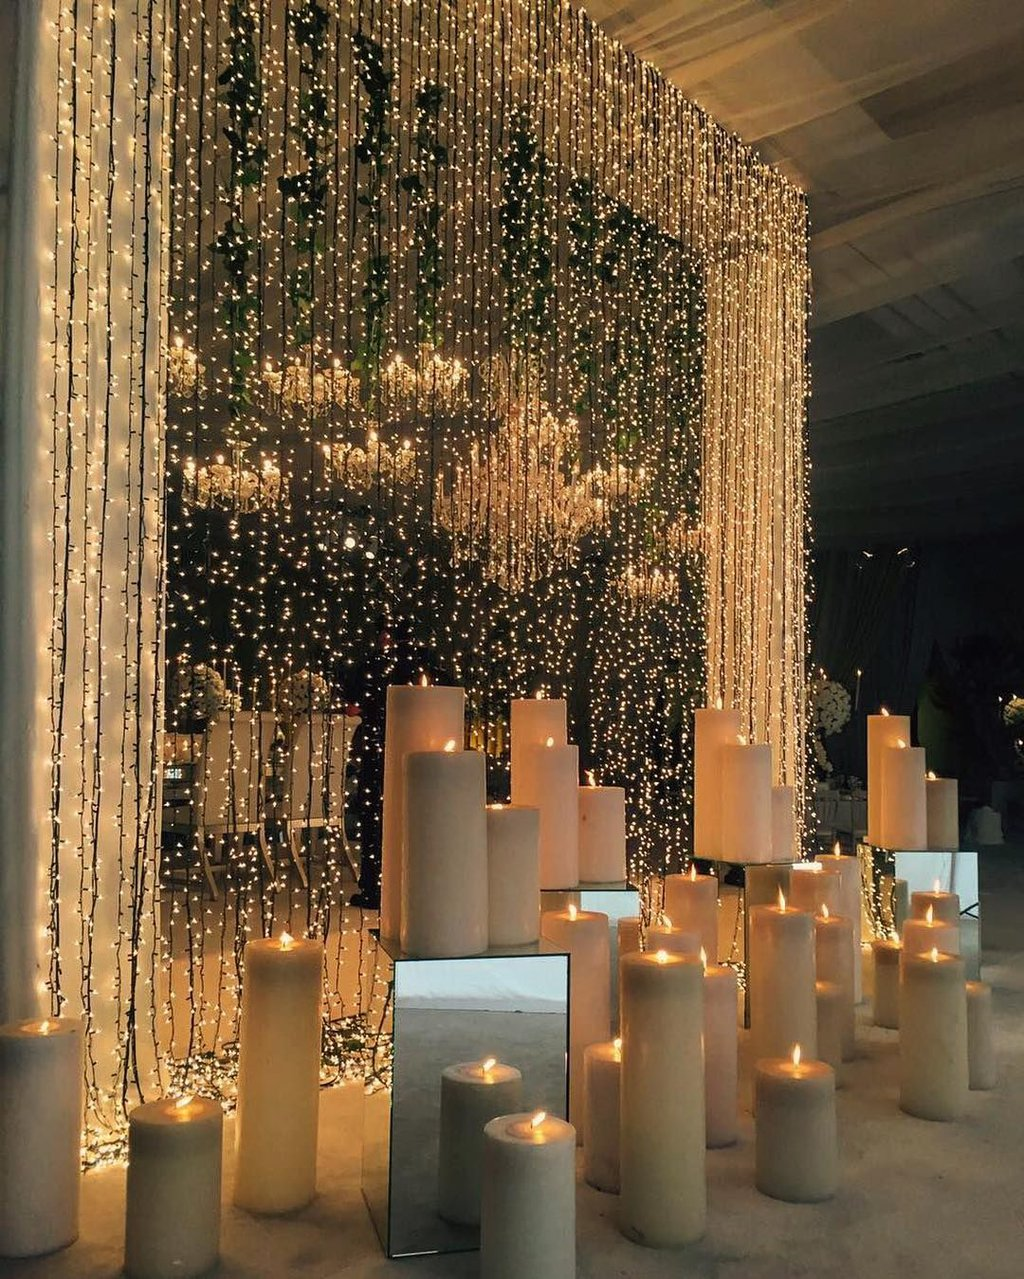 decor for night function